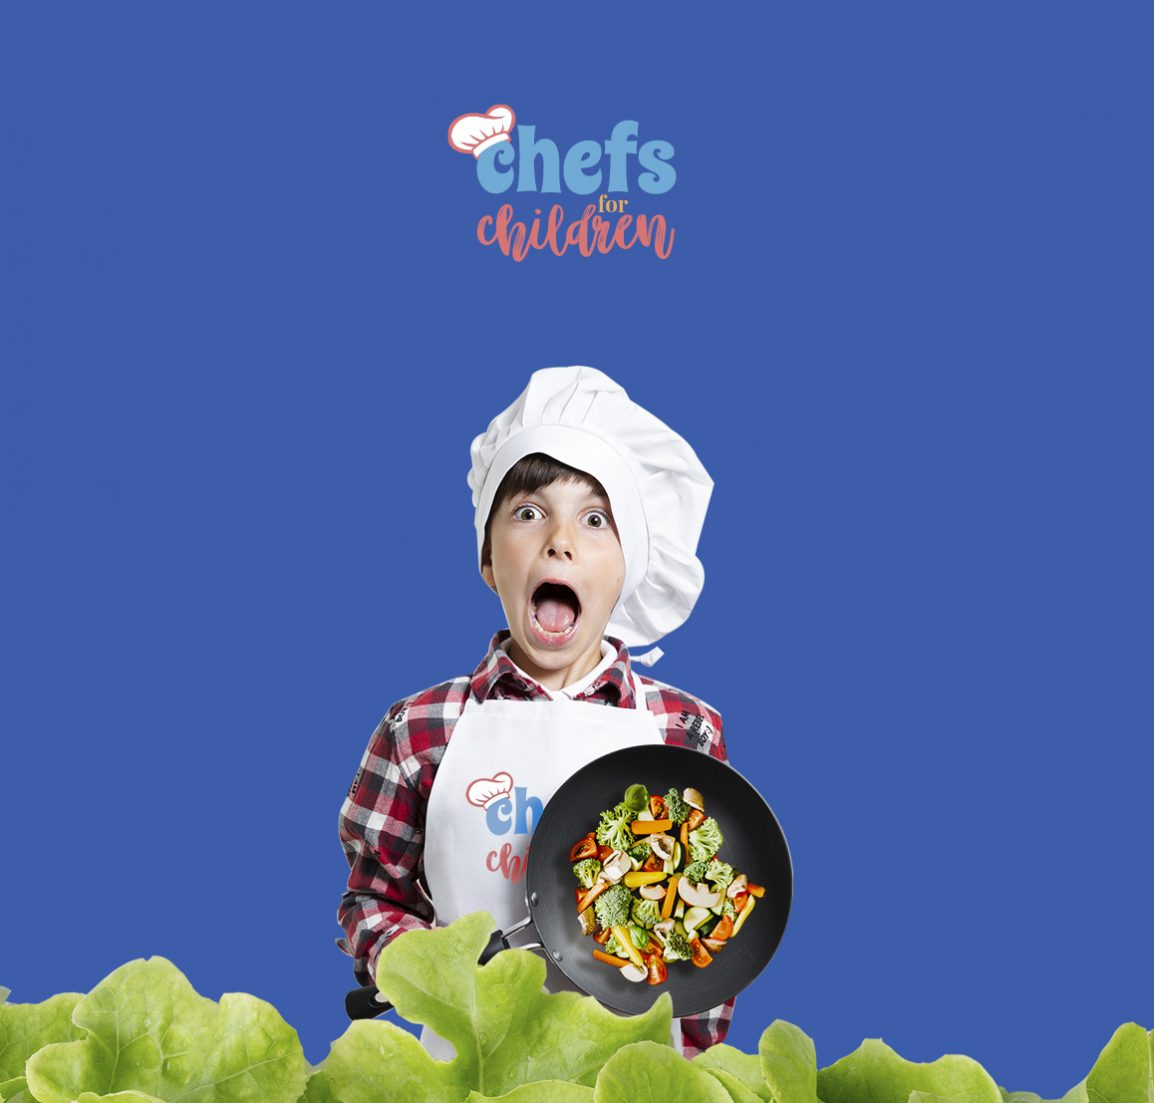 Chefs for Children